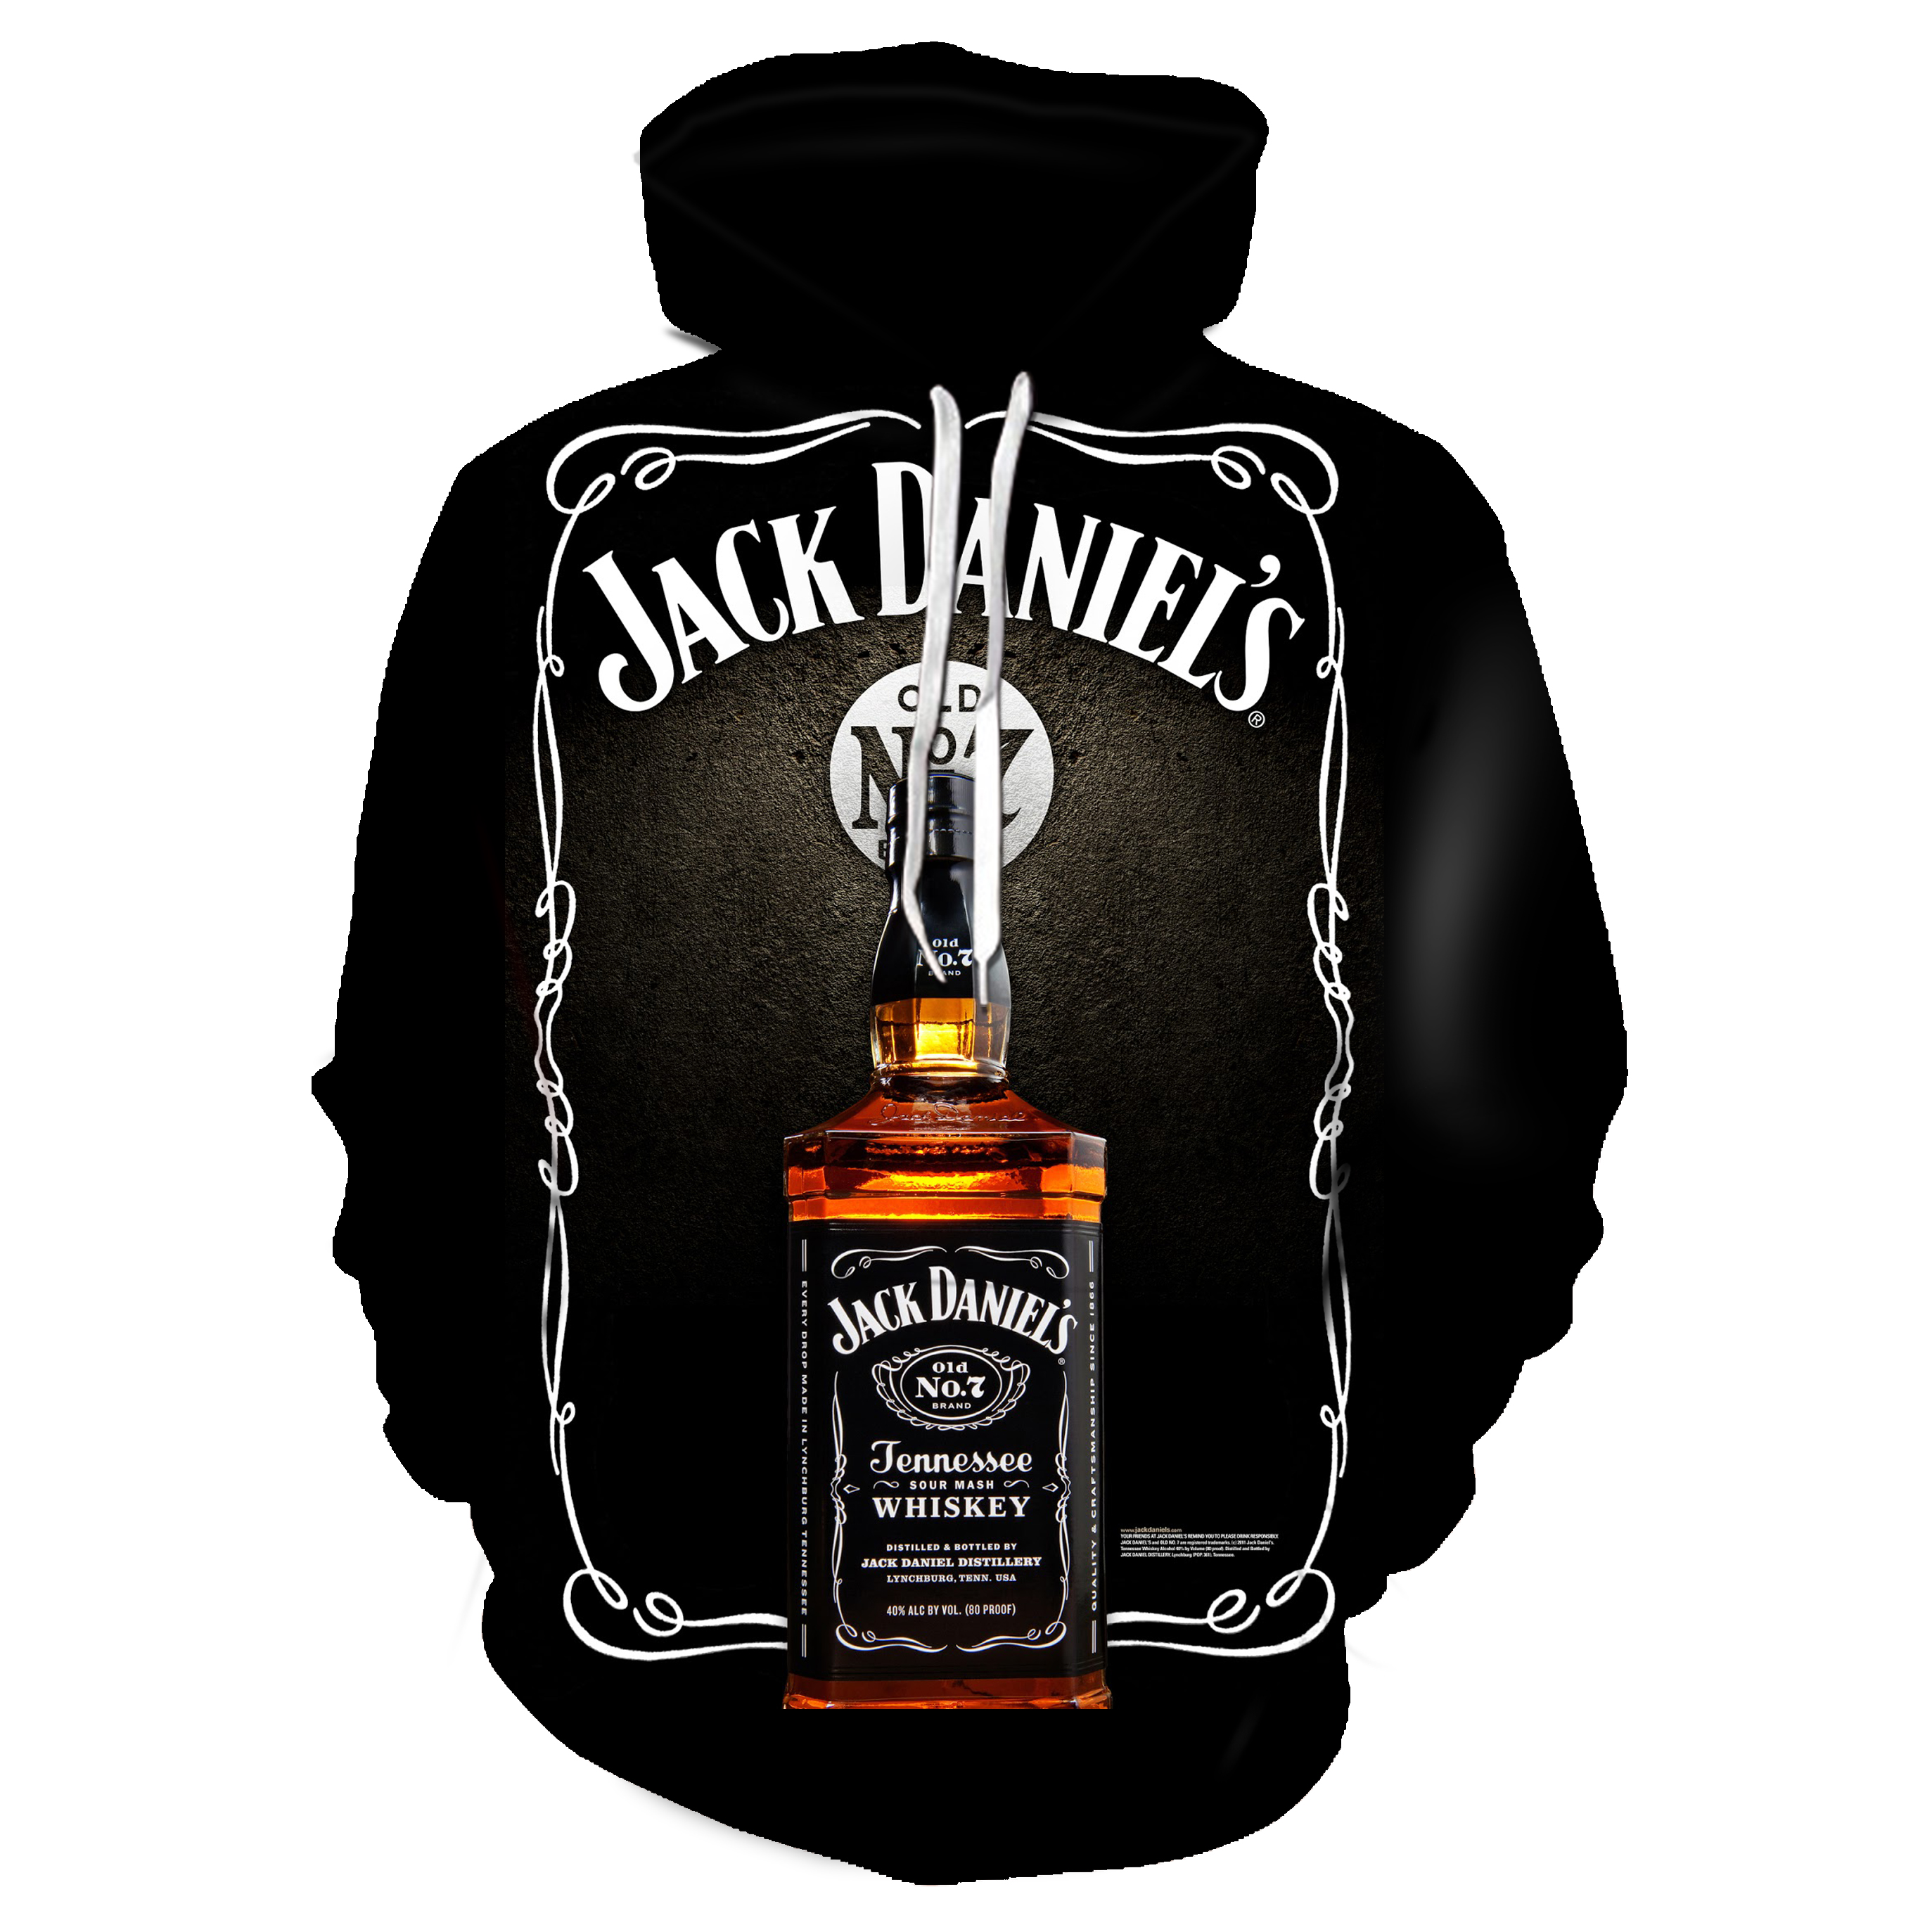 Black Whiskey Wine Men's Hoodie Men's Printed Hoodie Sweatshirts Casual LongSleeve Sport Harajuku Clothing